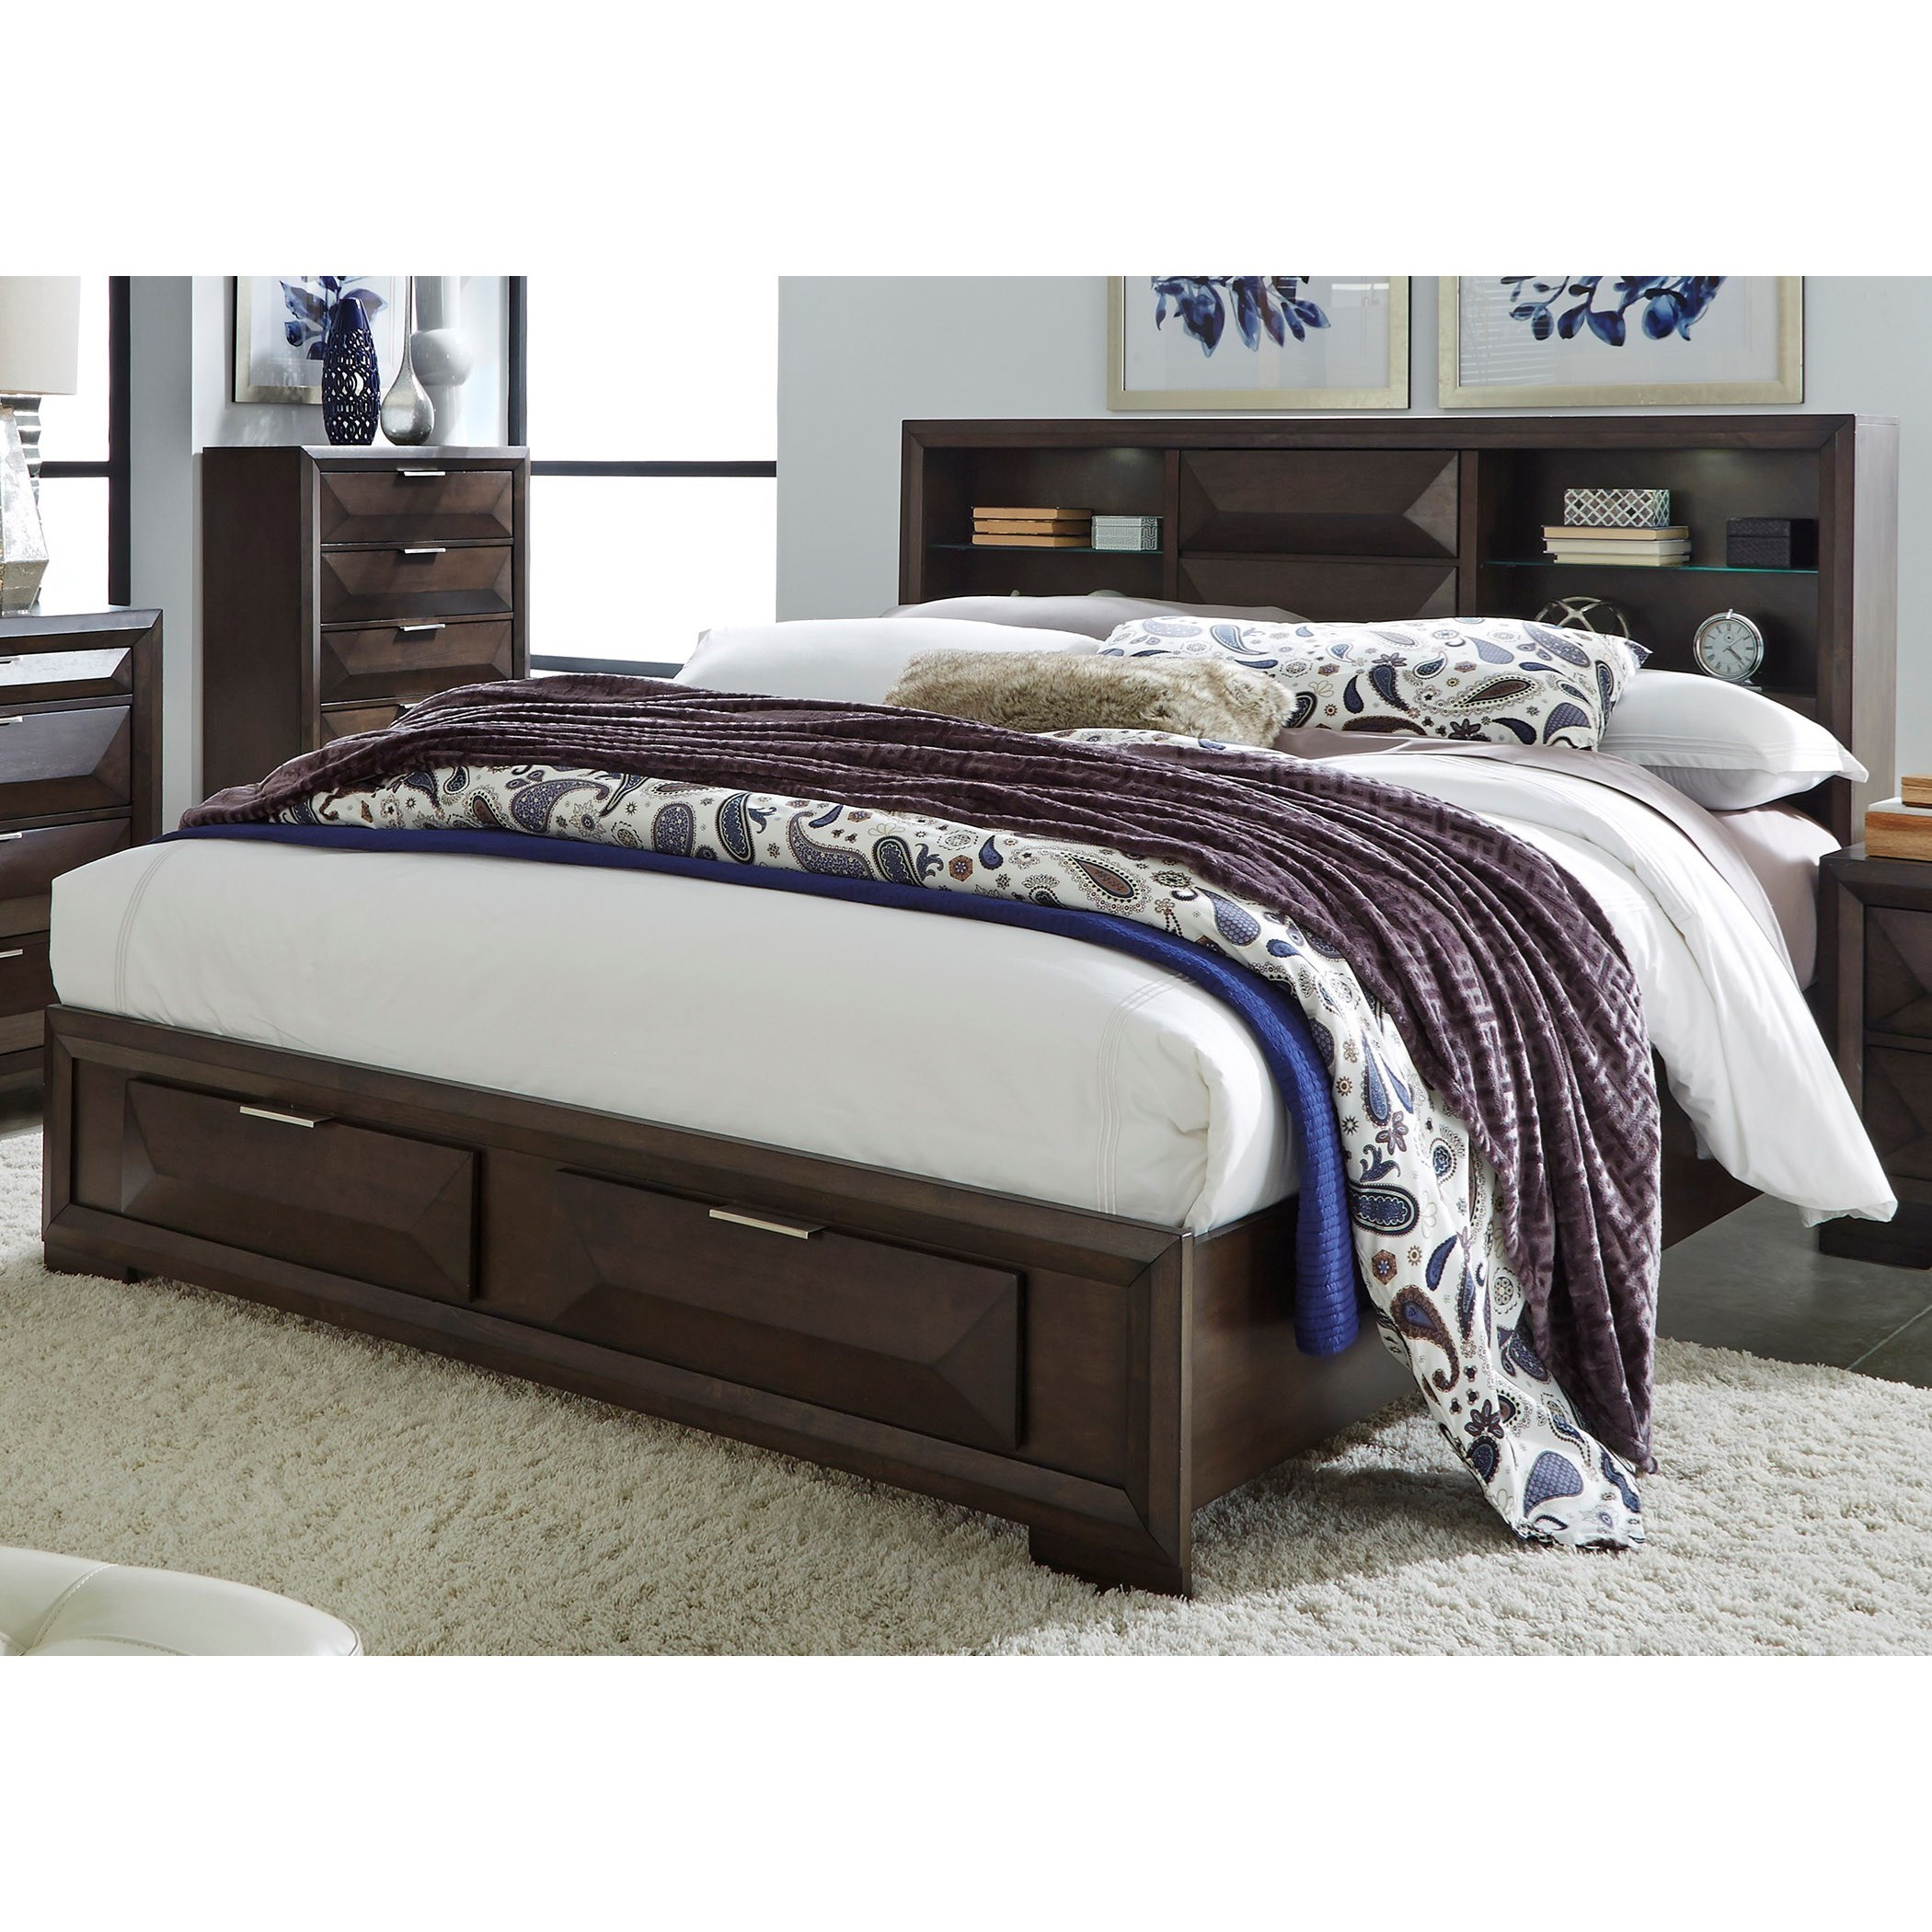 Bookcase Bed Nolan Contemporary Queen Bookcase Bed With Footboard Storage By Liberty Furniture At Rotmans